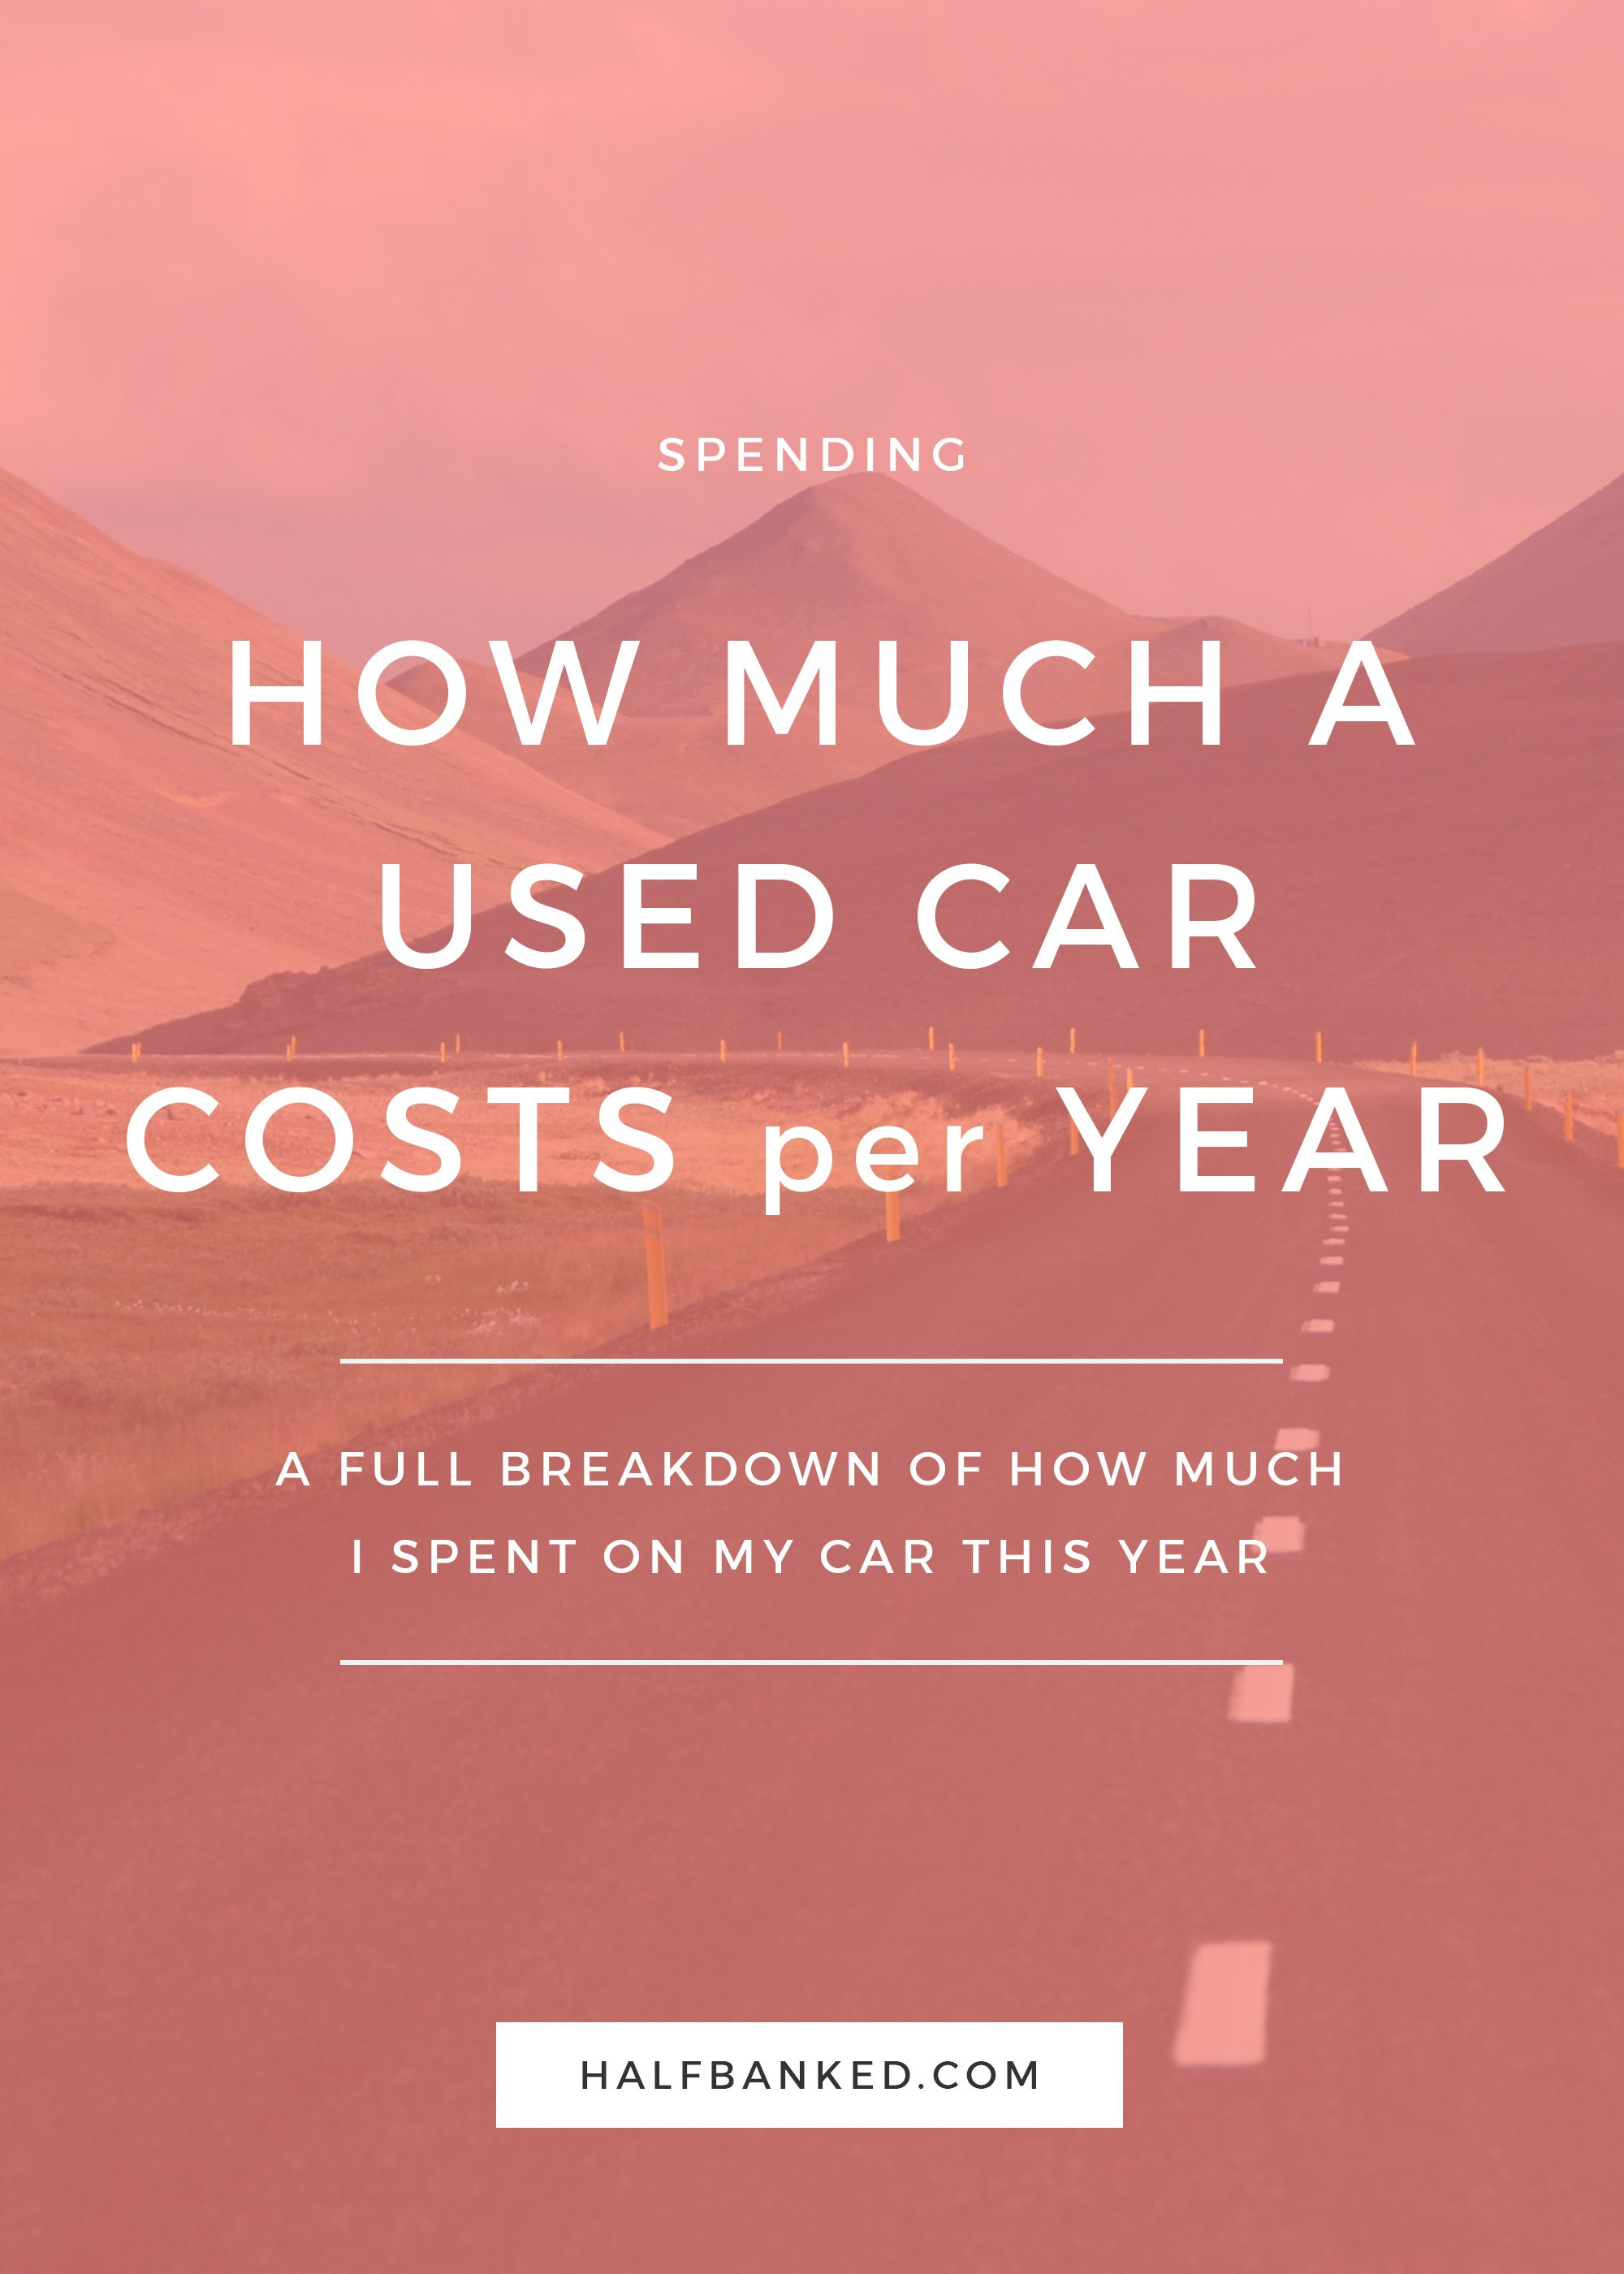 The real deal behind how much a (used) car costs to own per year.